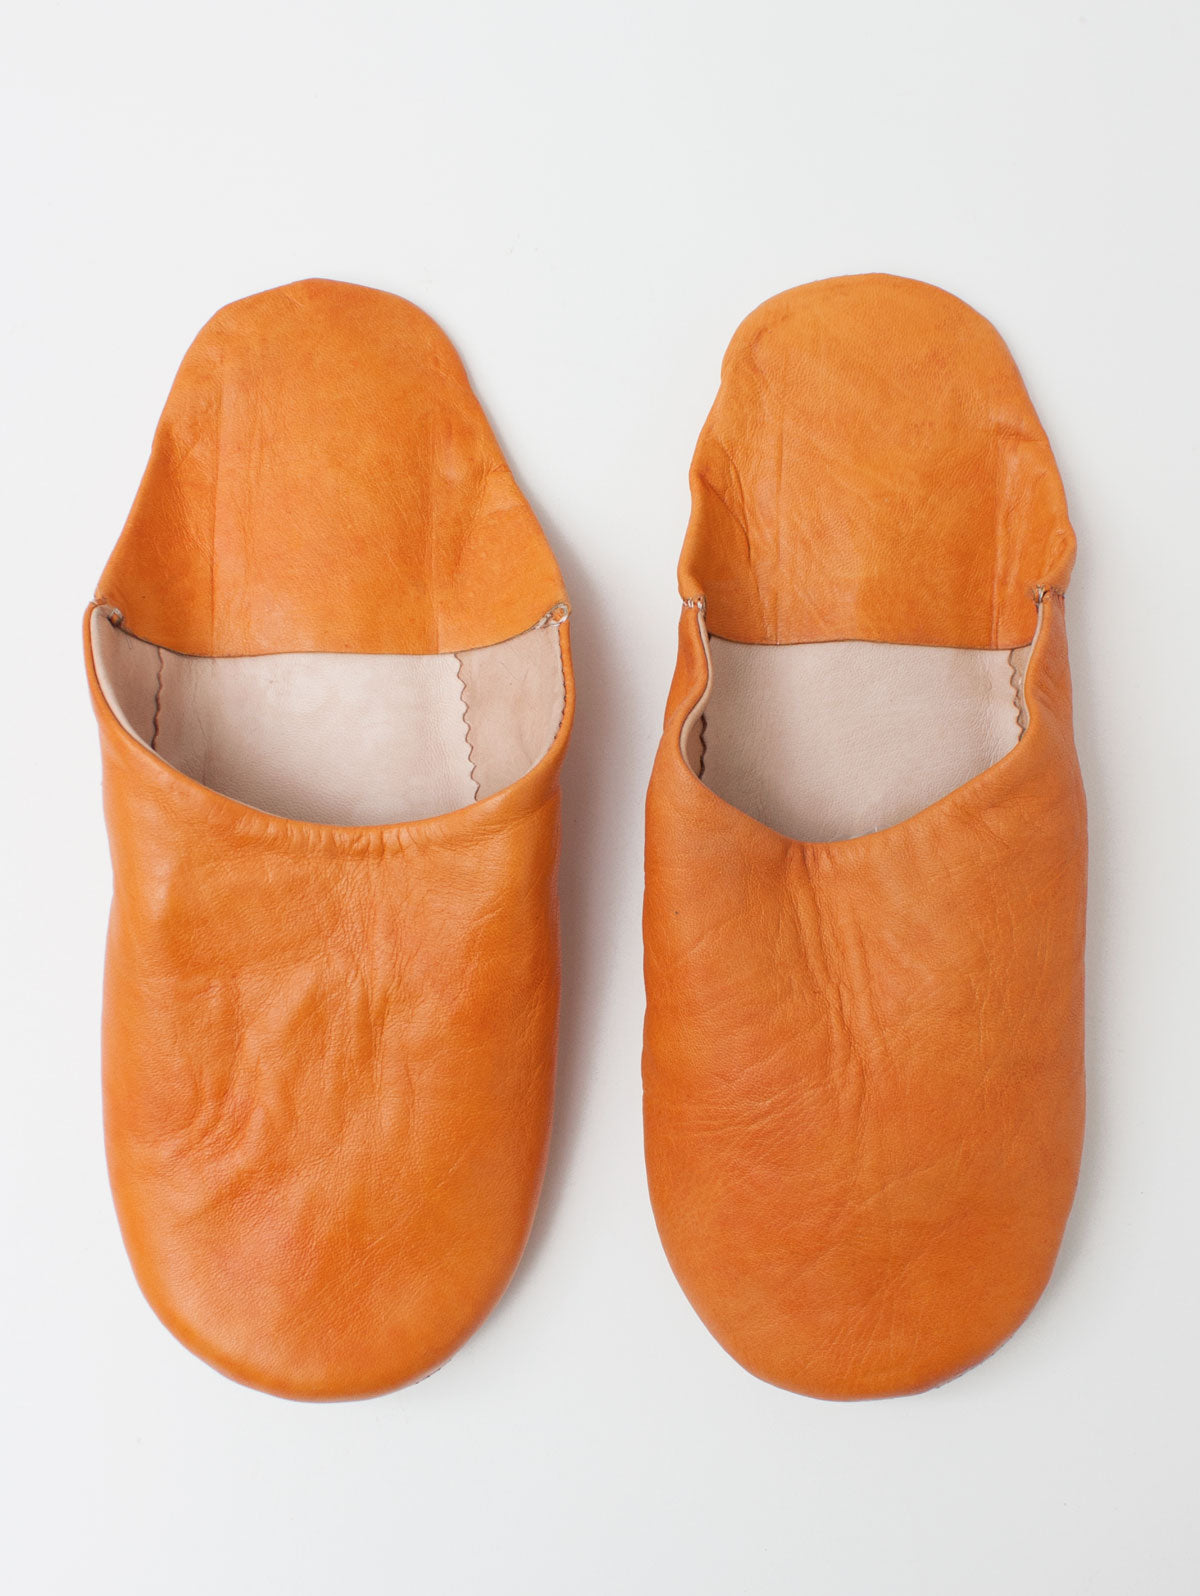 Moroccan Mens Babouche Slippers, Rust (Pack of 2)